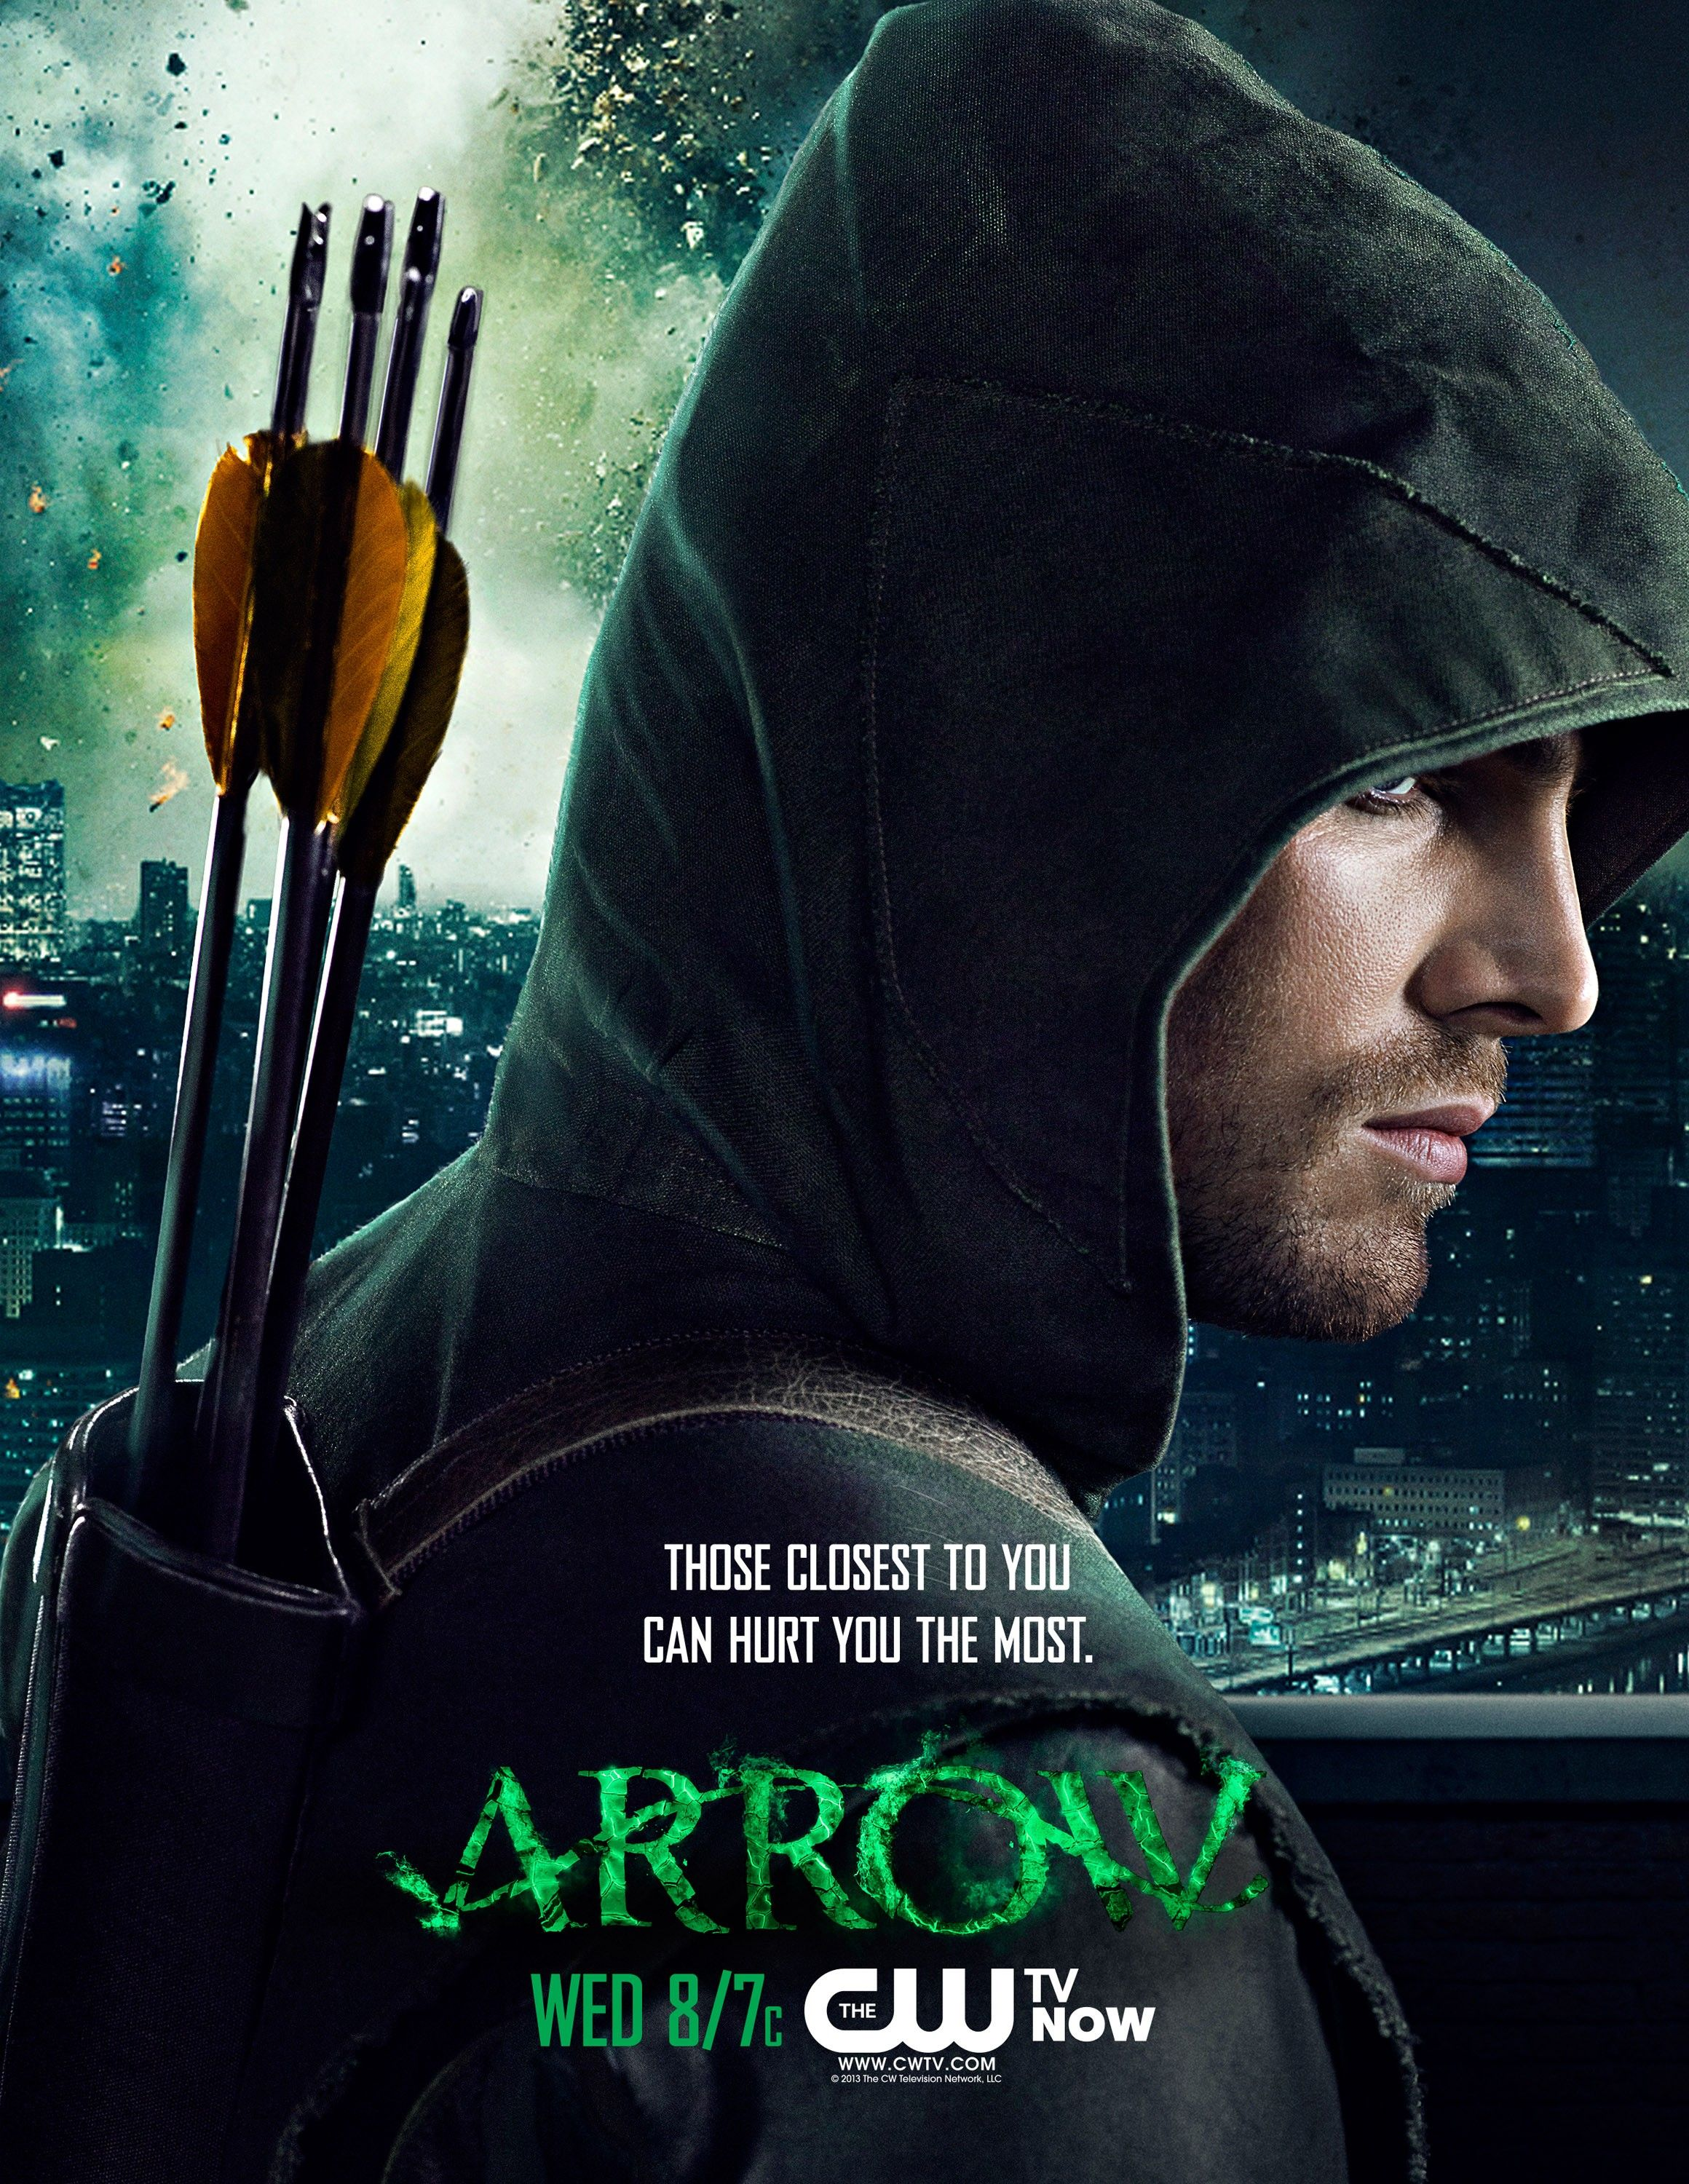 pin by mona on amelly wood in 2018 pinterest arrow tv arrow and